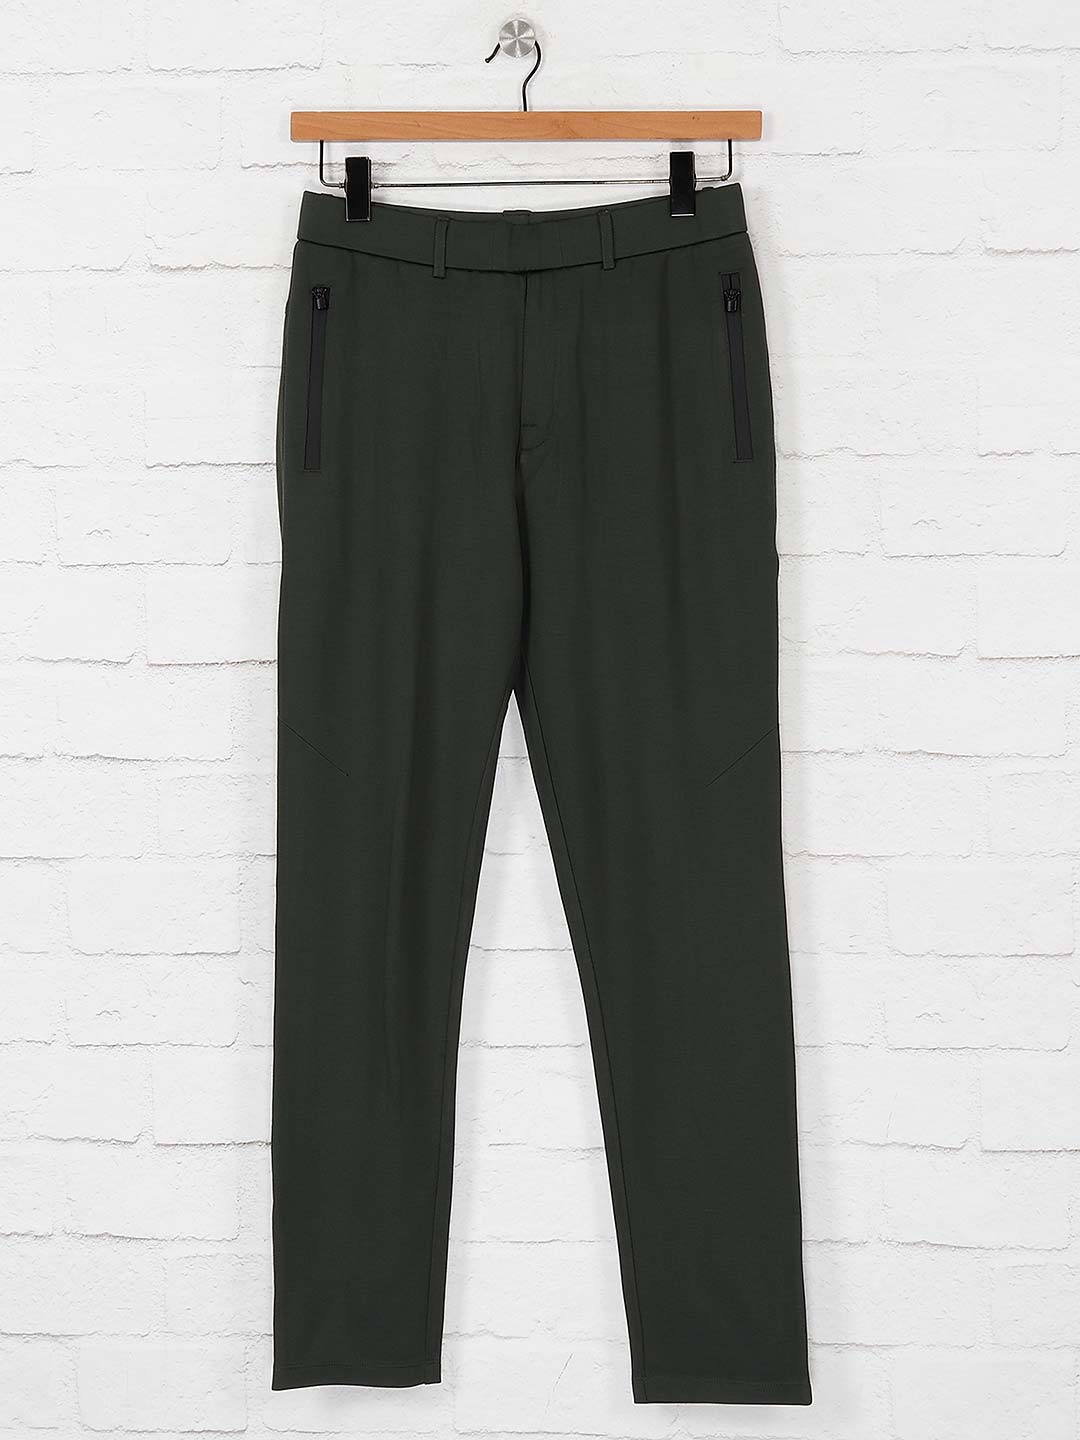 Maml olive colored cotton night track pant?imgeng=w_400